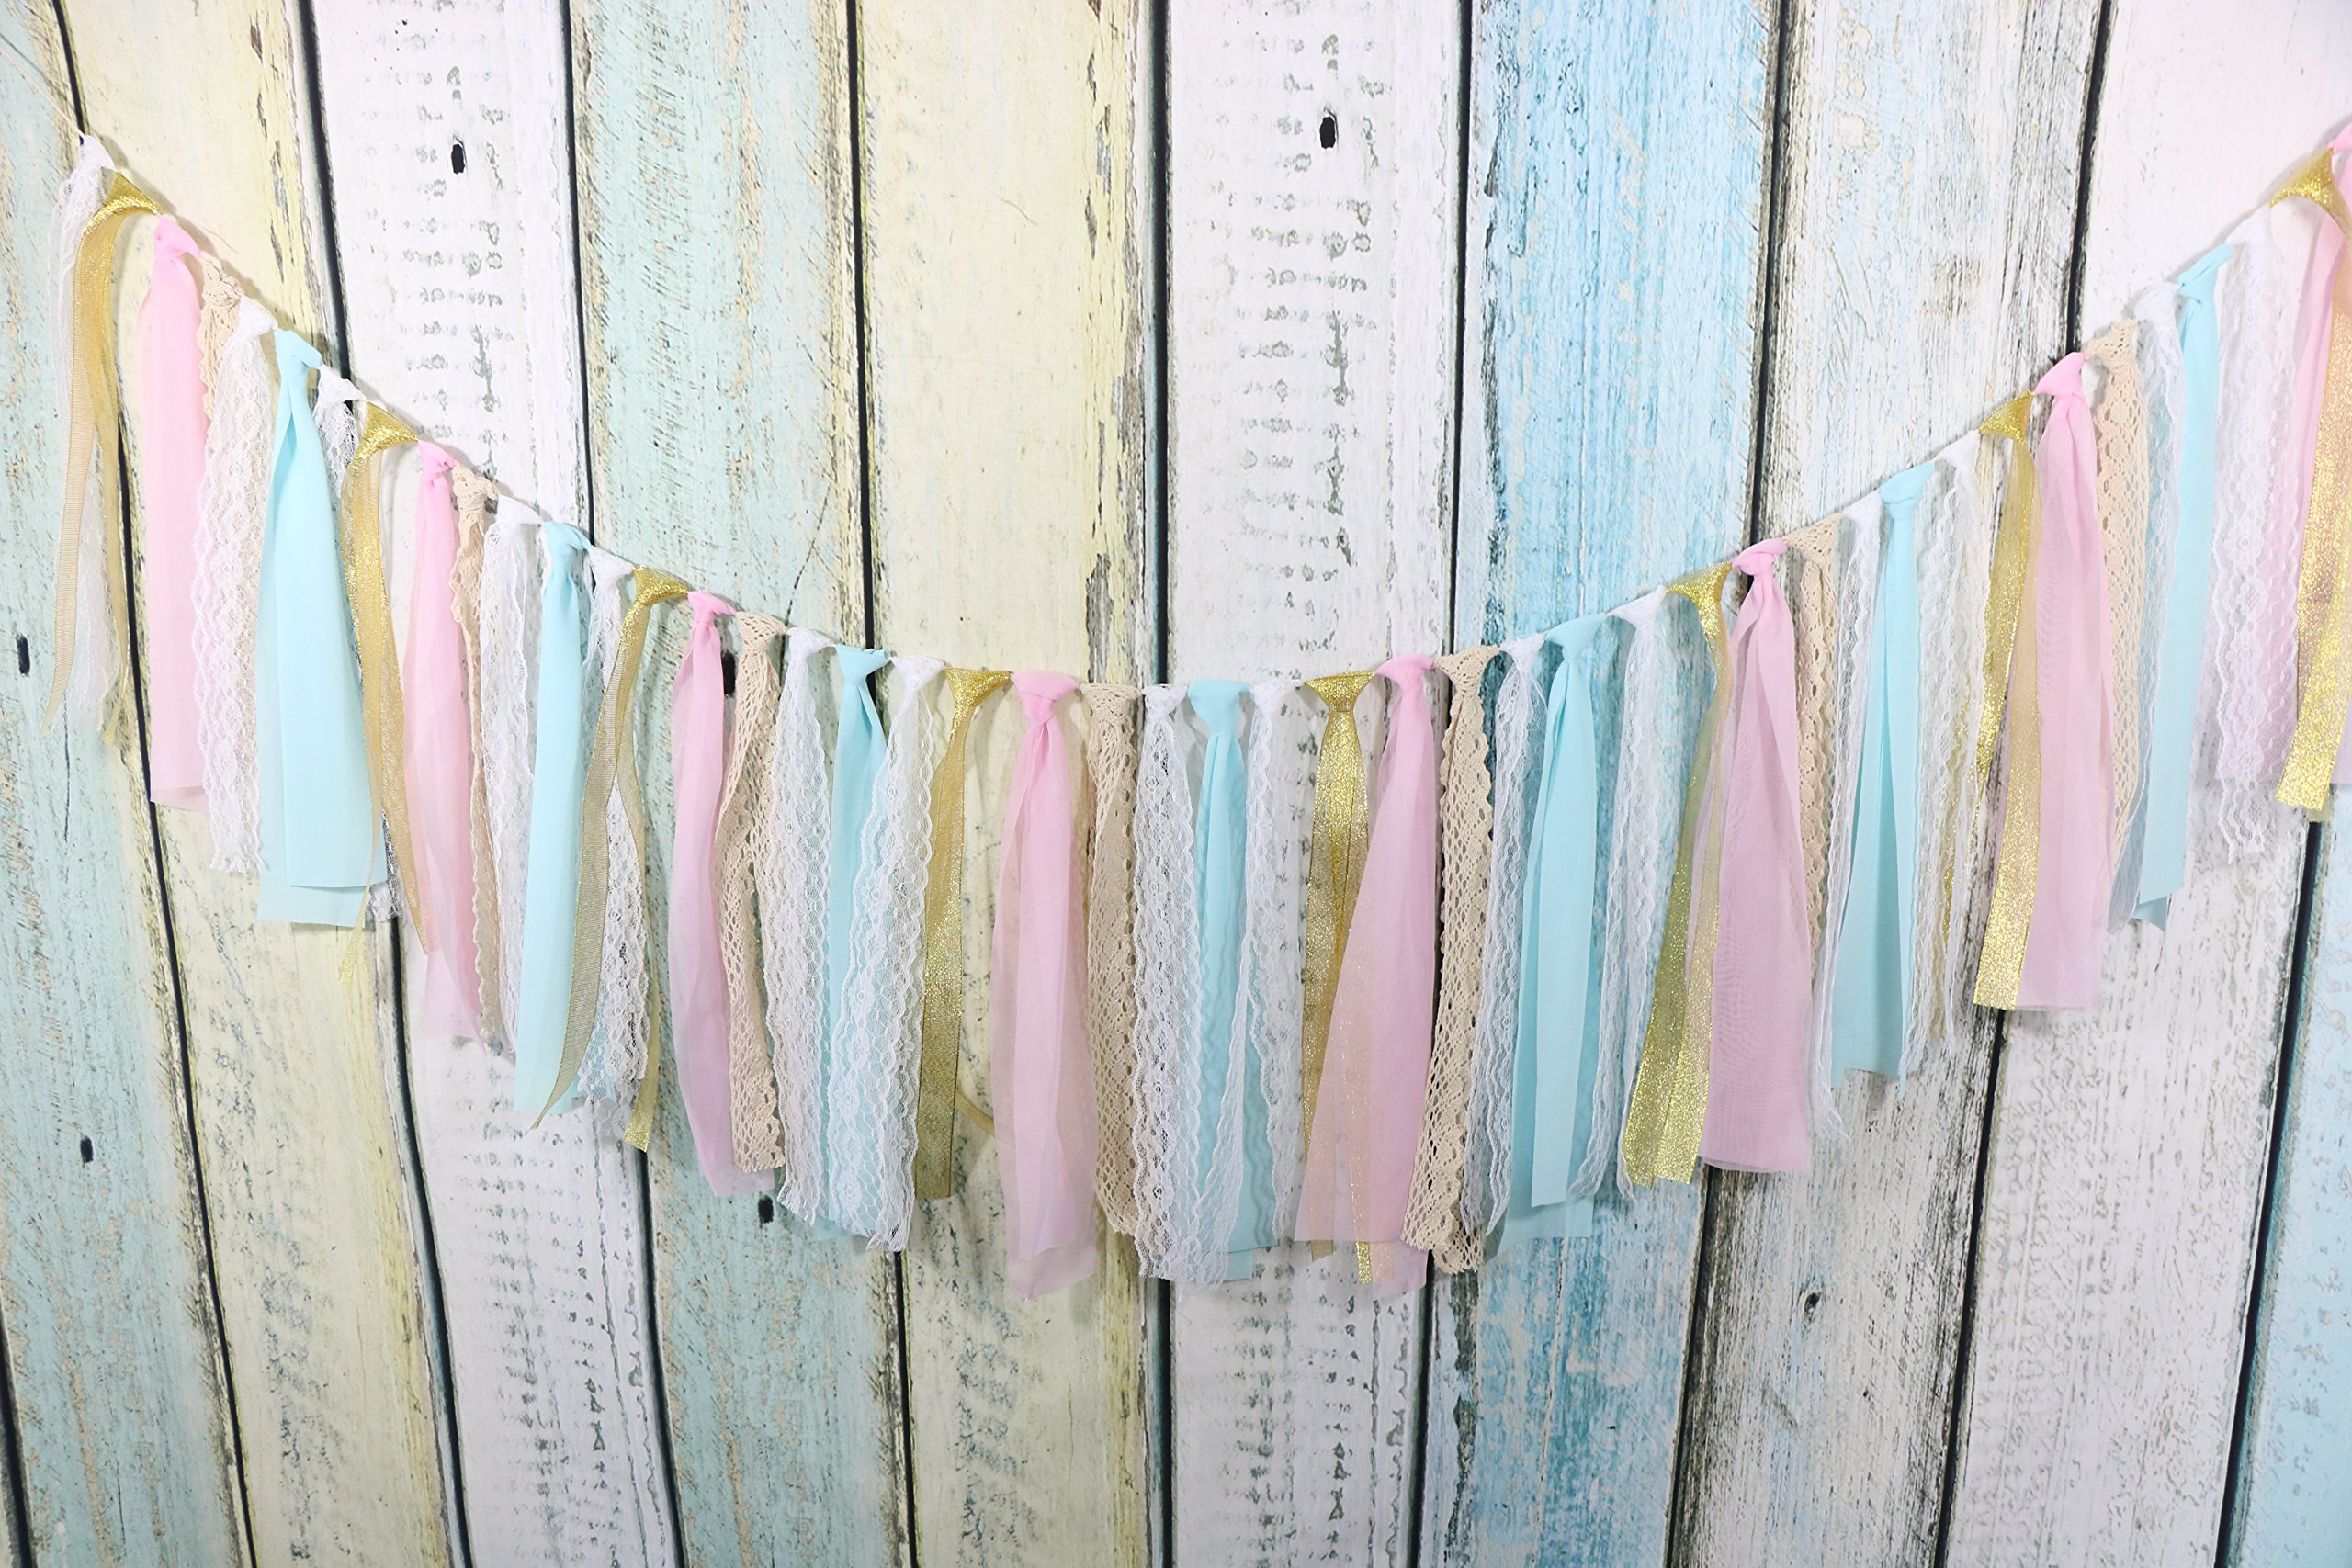 Lace Tassel Garland, Rag Tie Banner Already Assembled For Rustic Wedding Baby Shower Photo Backdrop Party Decor Nursery Decor Girls Birthday Decor Boho Chic Decor Home Decor 5Ft(White+Pink+Blue) by sweet dream